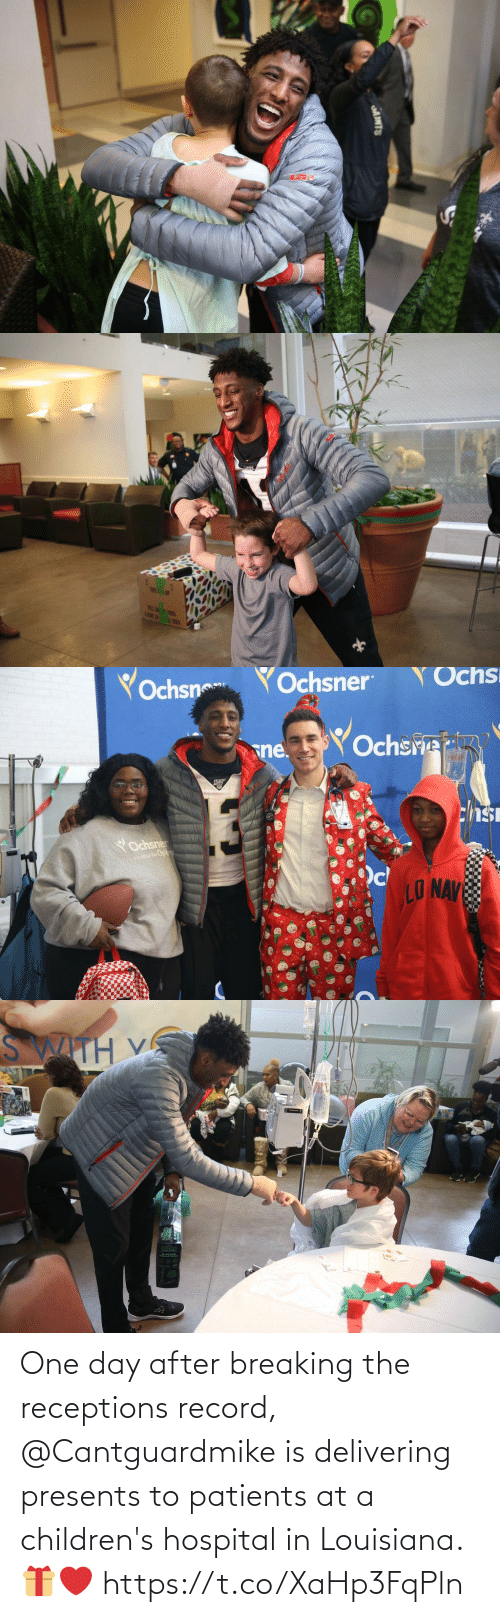 one day: AINTS   TRIS! 1P  FRLE CA T  LENE LA   Yochsn  YOchsner  Ochs  Ochsre  sne.  chsi  YOchsner  Hospai For Childwan  LO NAV   SWITH V One day after breaking the receptions record, @Cantguardmike is delivering presents to patients at a children's hospital in Louisiana. 🎁❤️ https://t.co/XaHp3FqPln